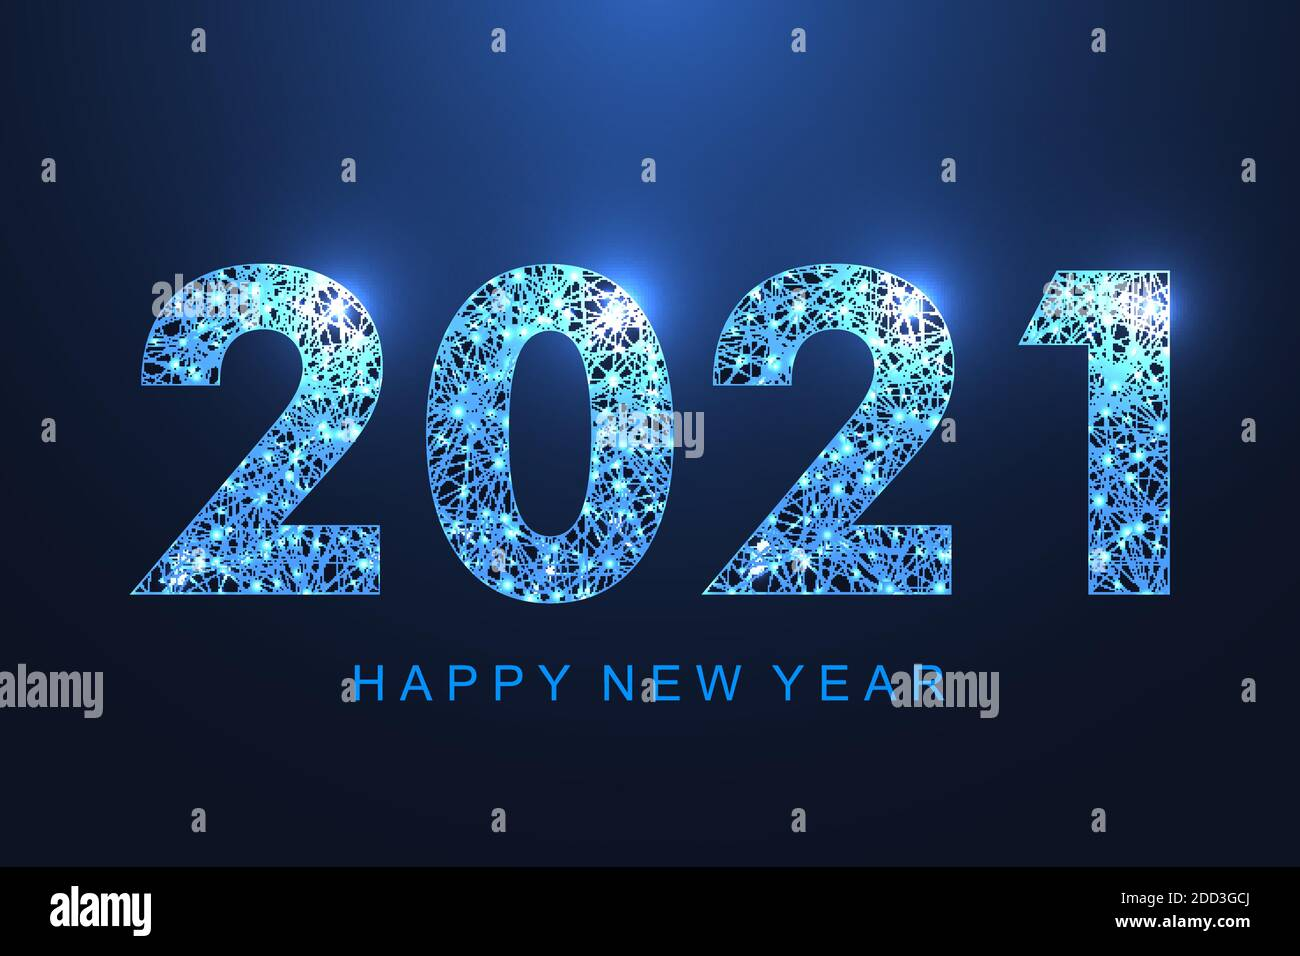 2021 Christmas Technology Merry Christmas And Happy New Year 2021 Greeting Card Modern Futuristic Template For 2021 Digital Data Visualization Business Technology Concept Stock Vector Image Art Alamy